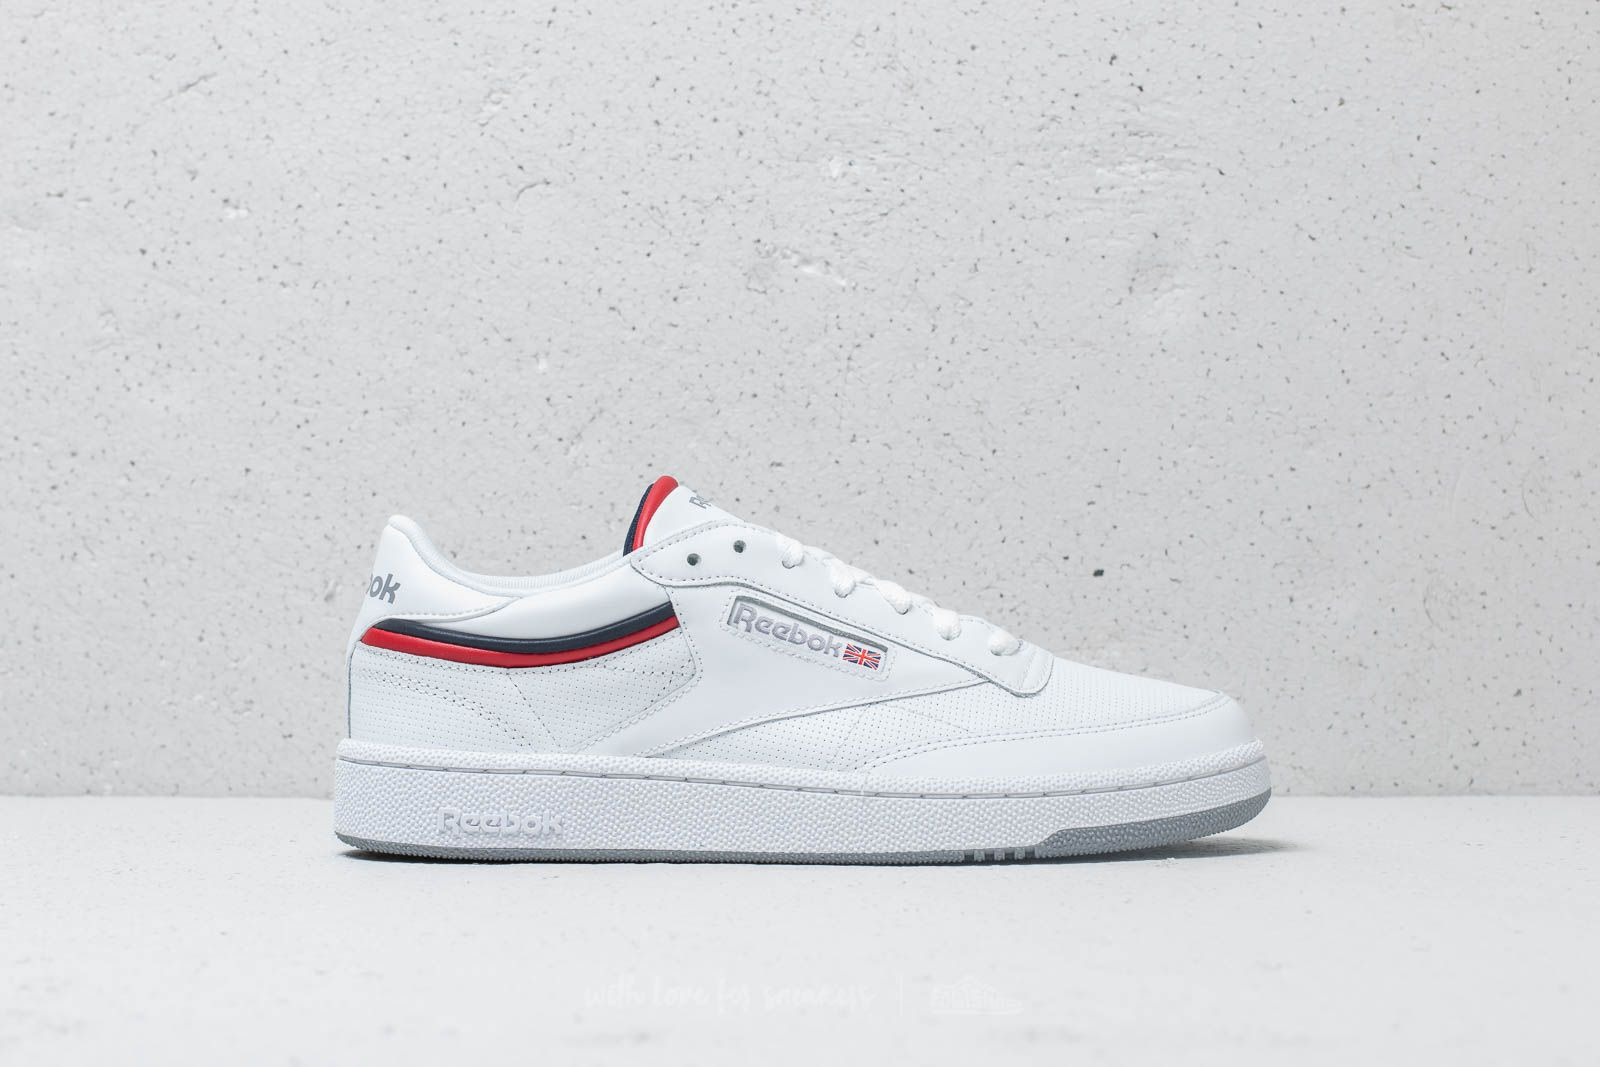 c92fdba3179 Reebok Club C 85 MU White  Navy  Red  Shadow at a great price